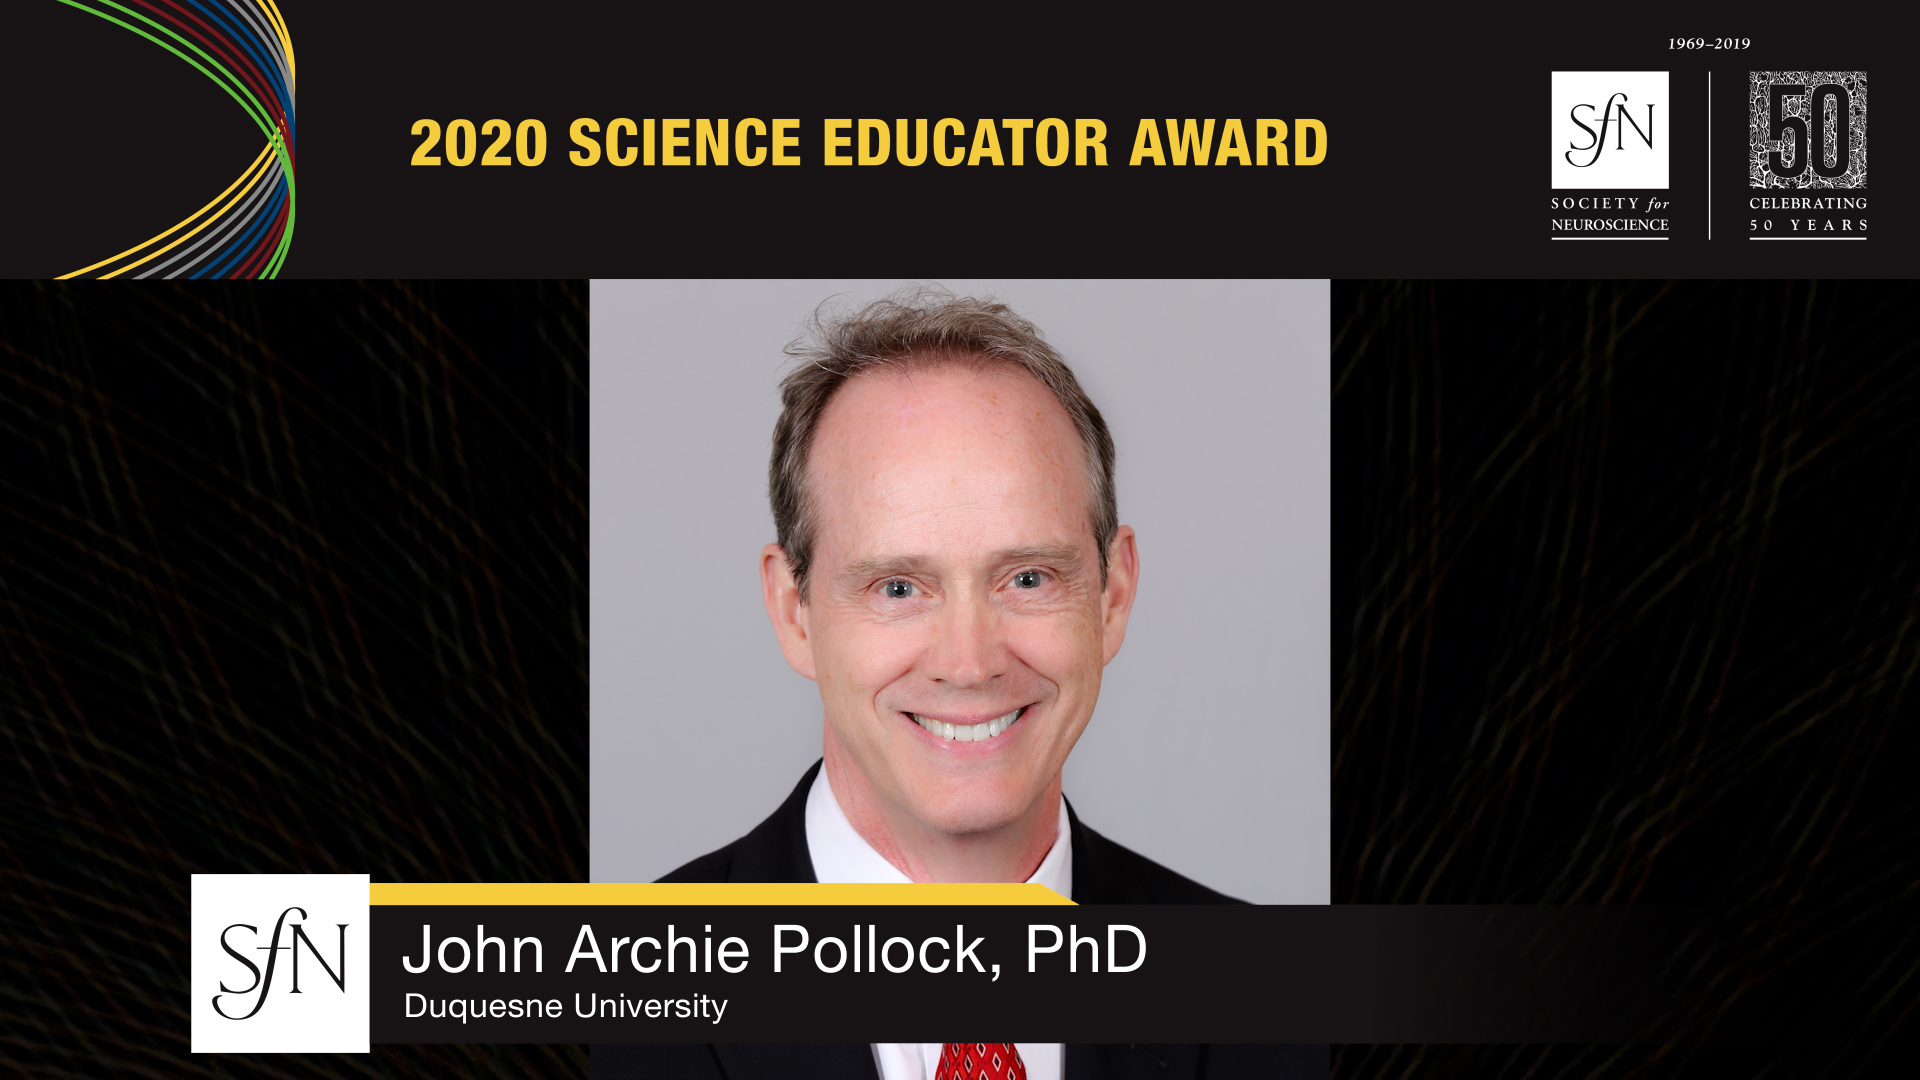 2020 Science Educator Award winner graphic, image of John Archie Pollock, PhD Duquesne University